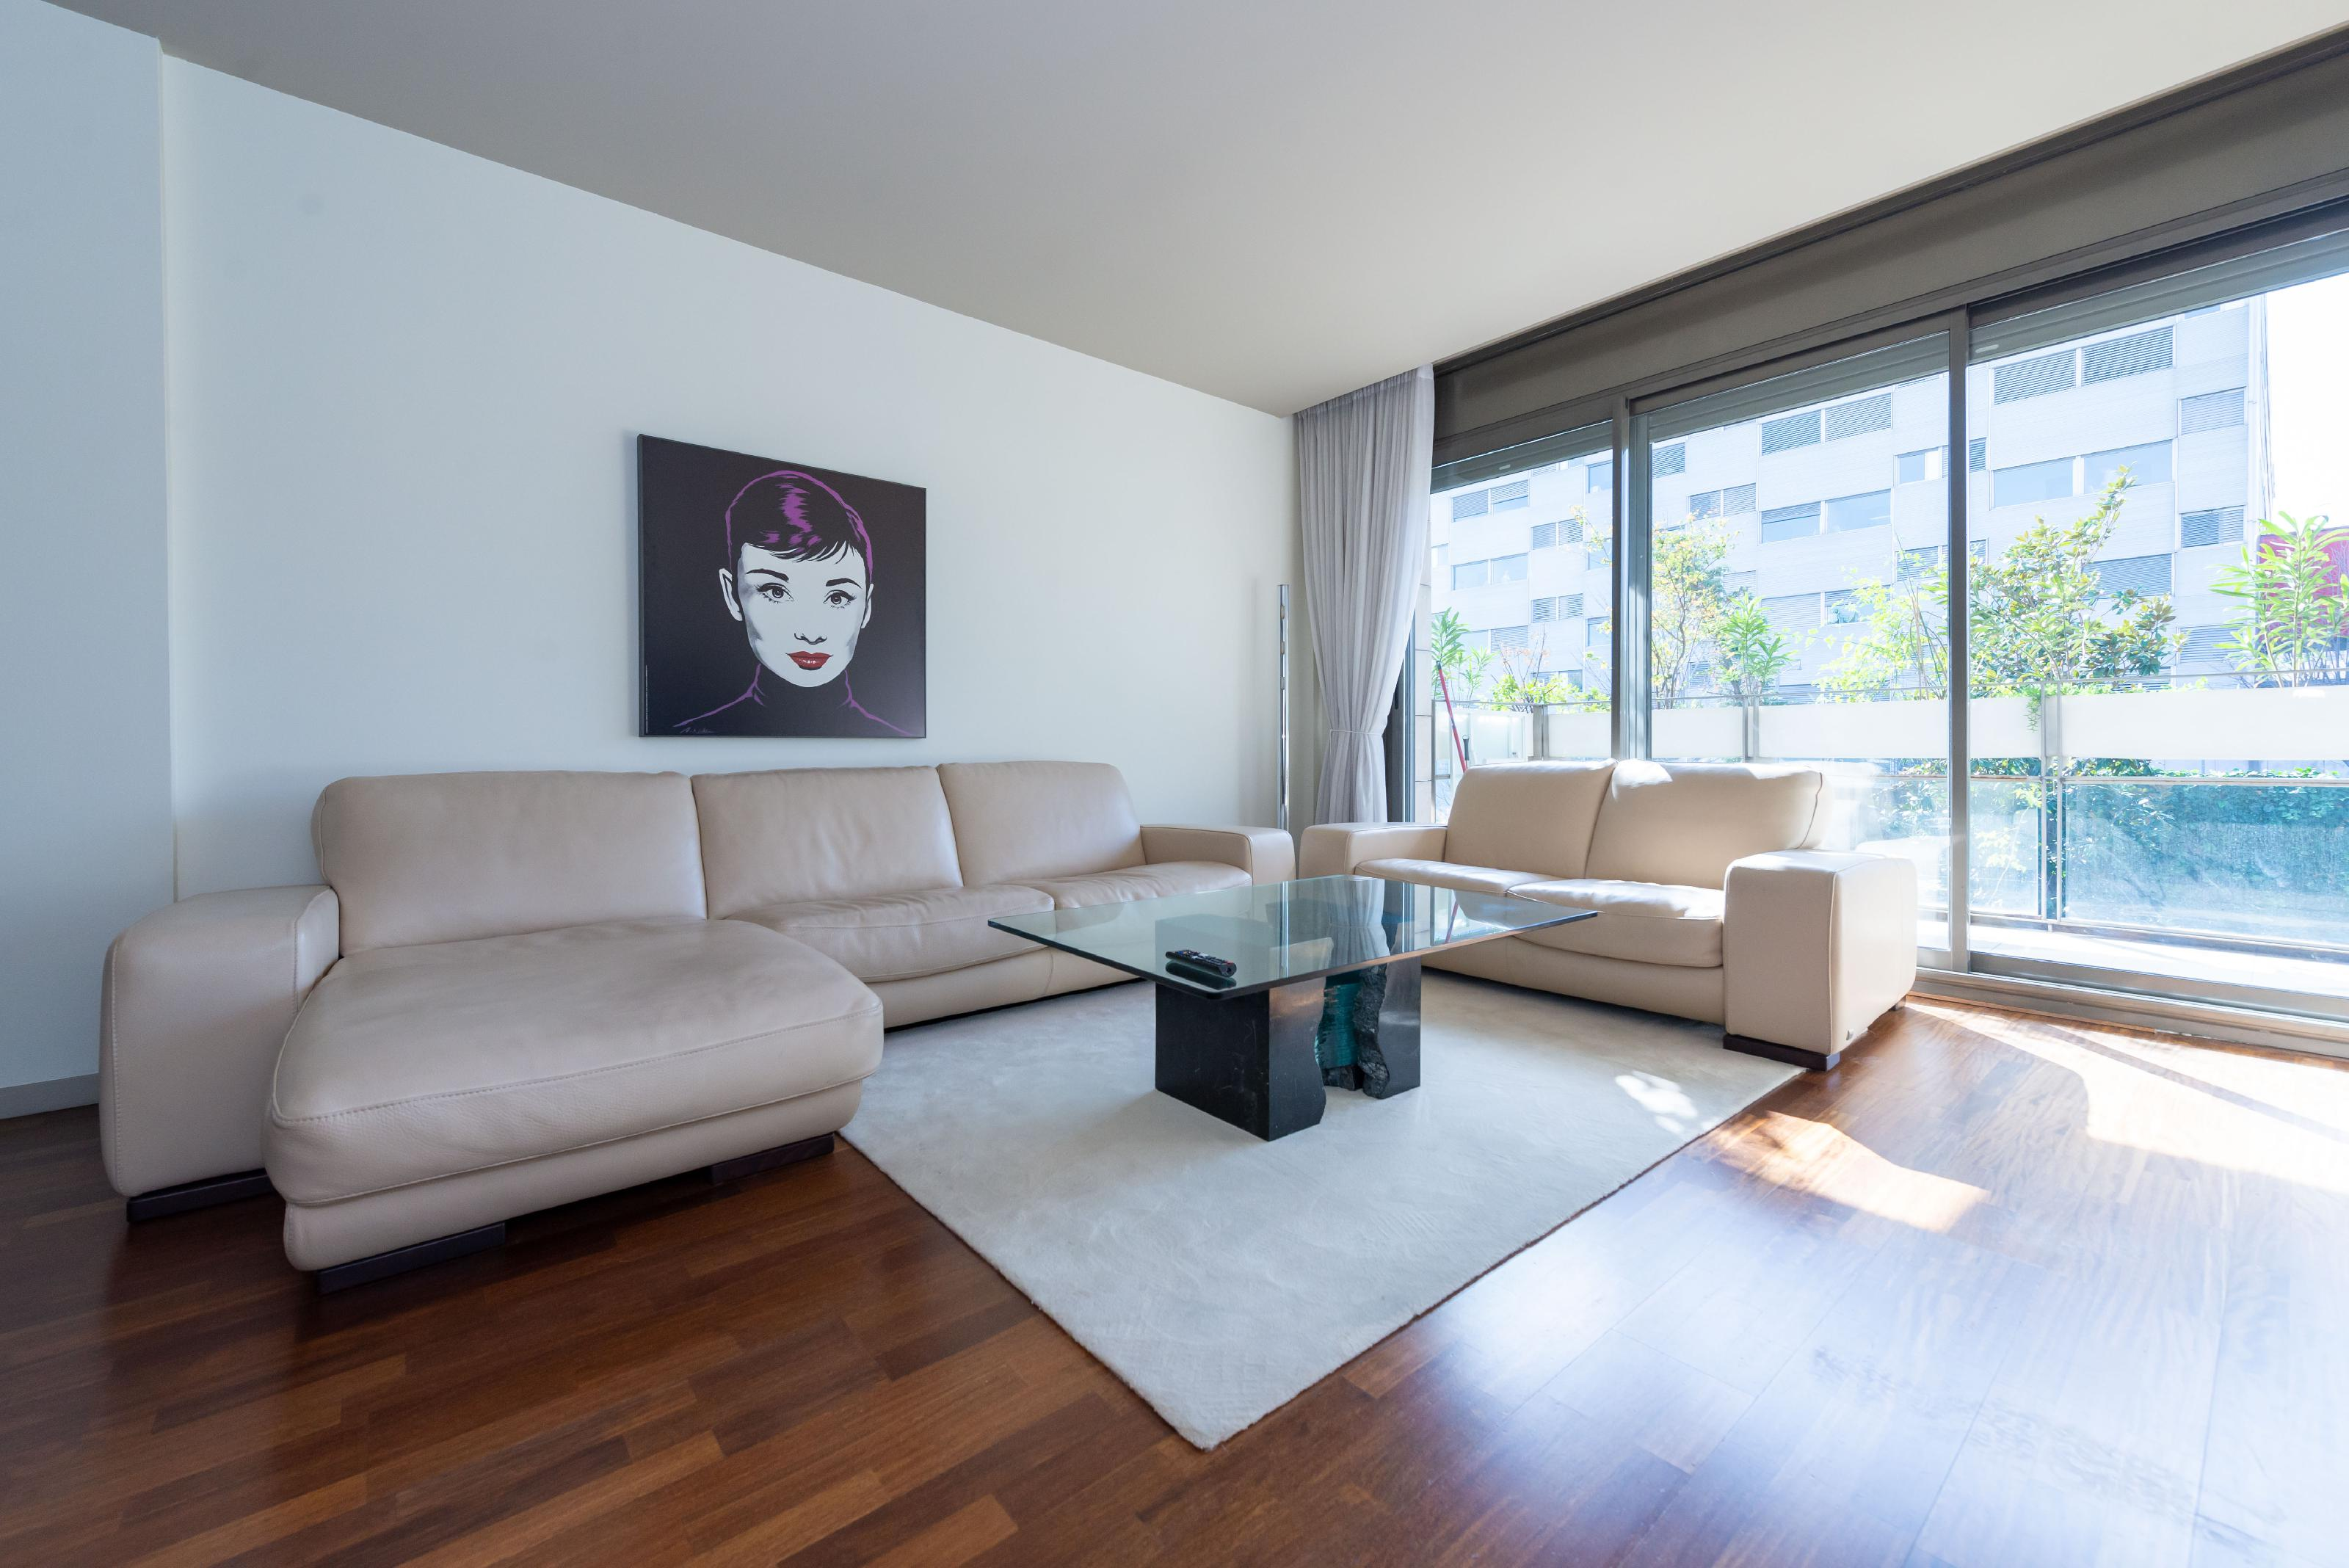 246682 Flat for sale in Gràcia, Vallcarca and Els Penitents 4